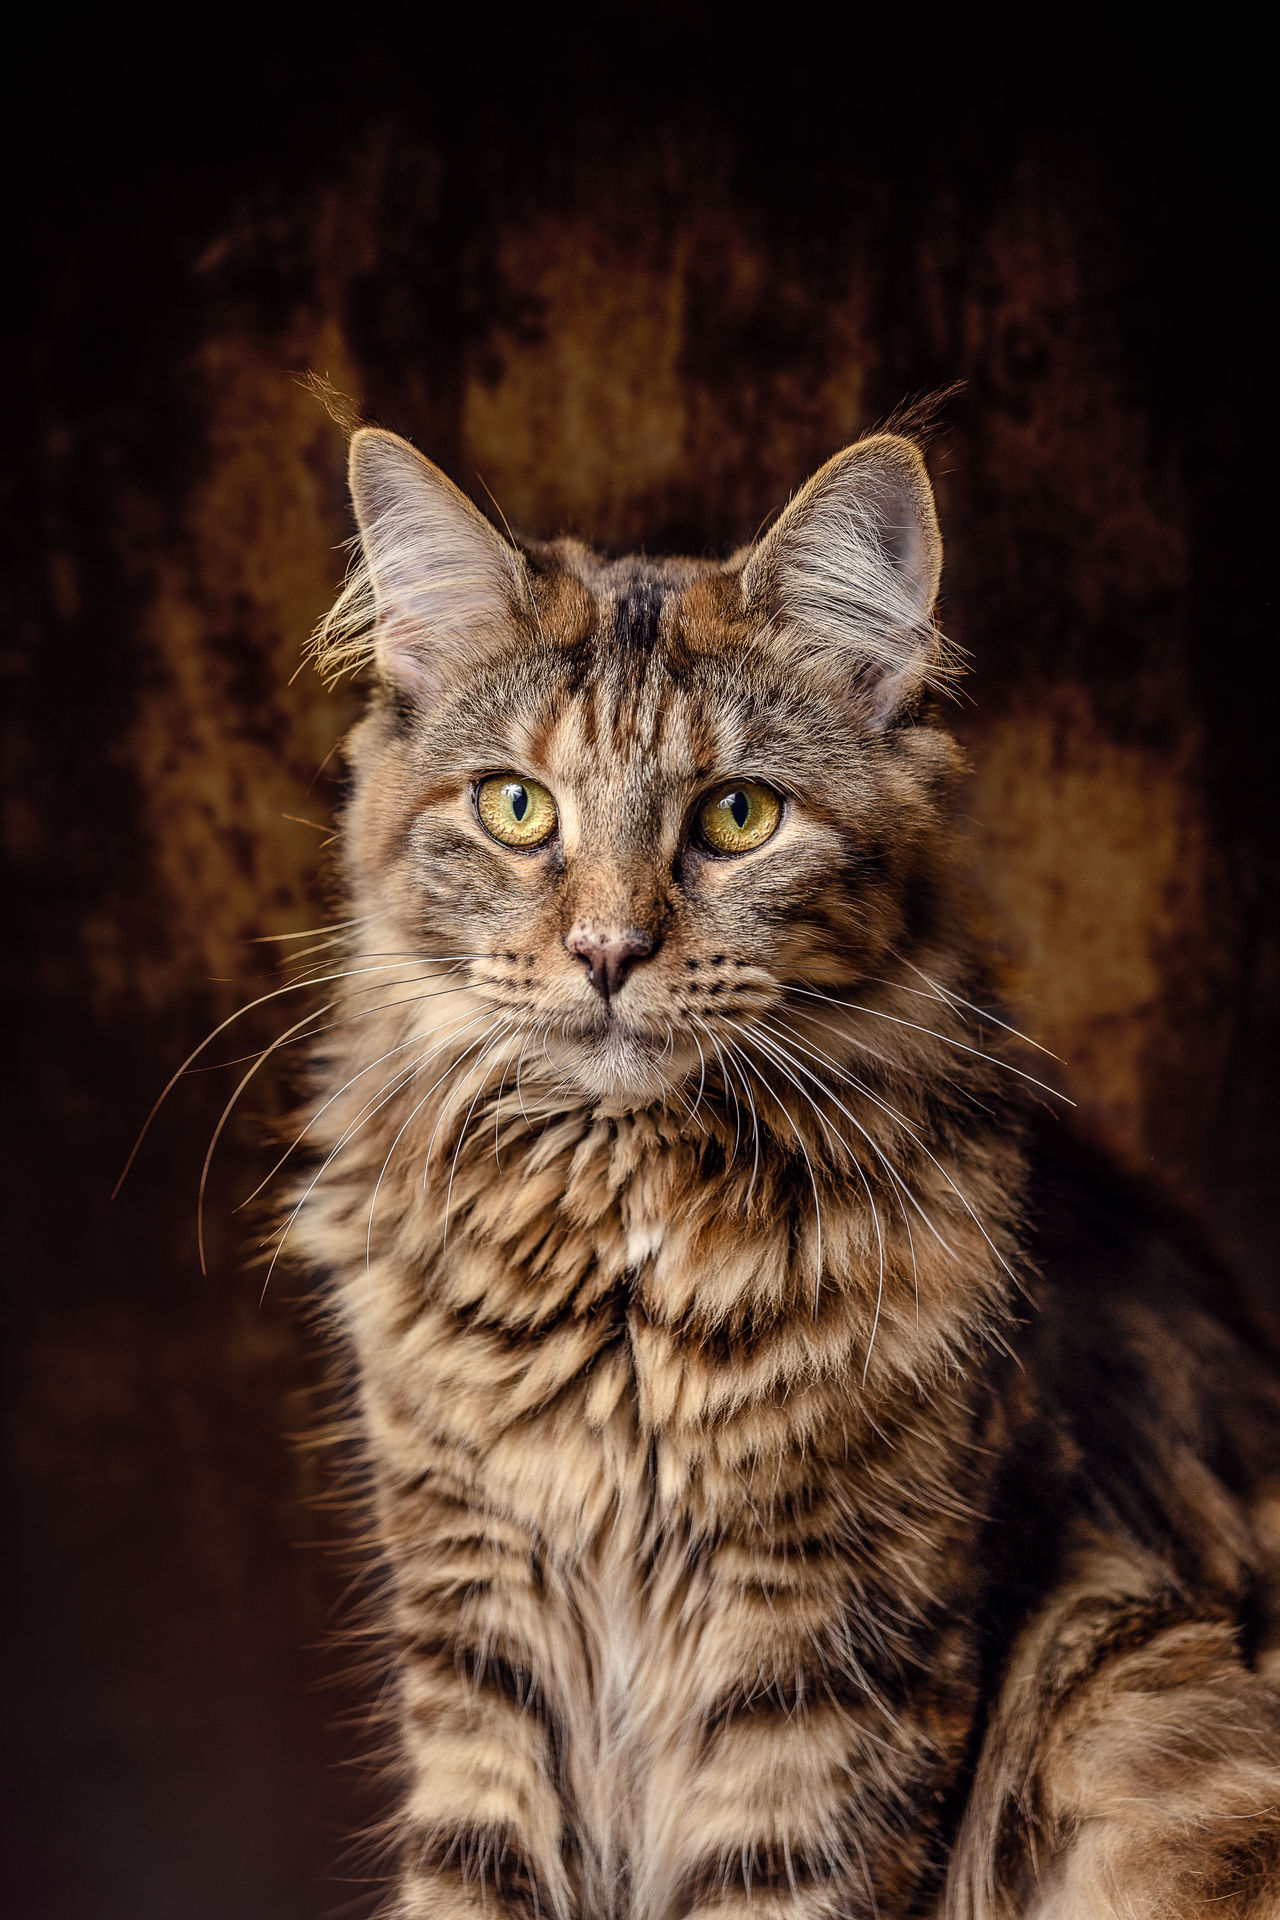 Young female Maine Coon Cat Animal Hair Animal Themes Black Background Close-up Day Domestic Animals Domestic Cat Feline Indoors  Looking At Camera Maine Coon Cat Mammal No People One Animal Pets Portrait Whisker